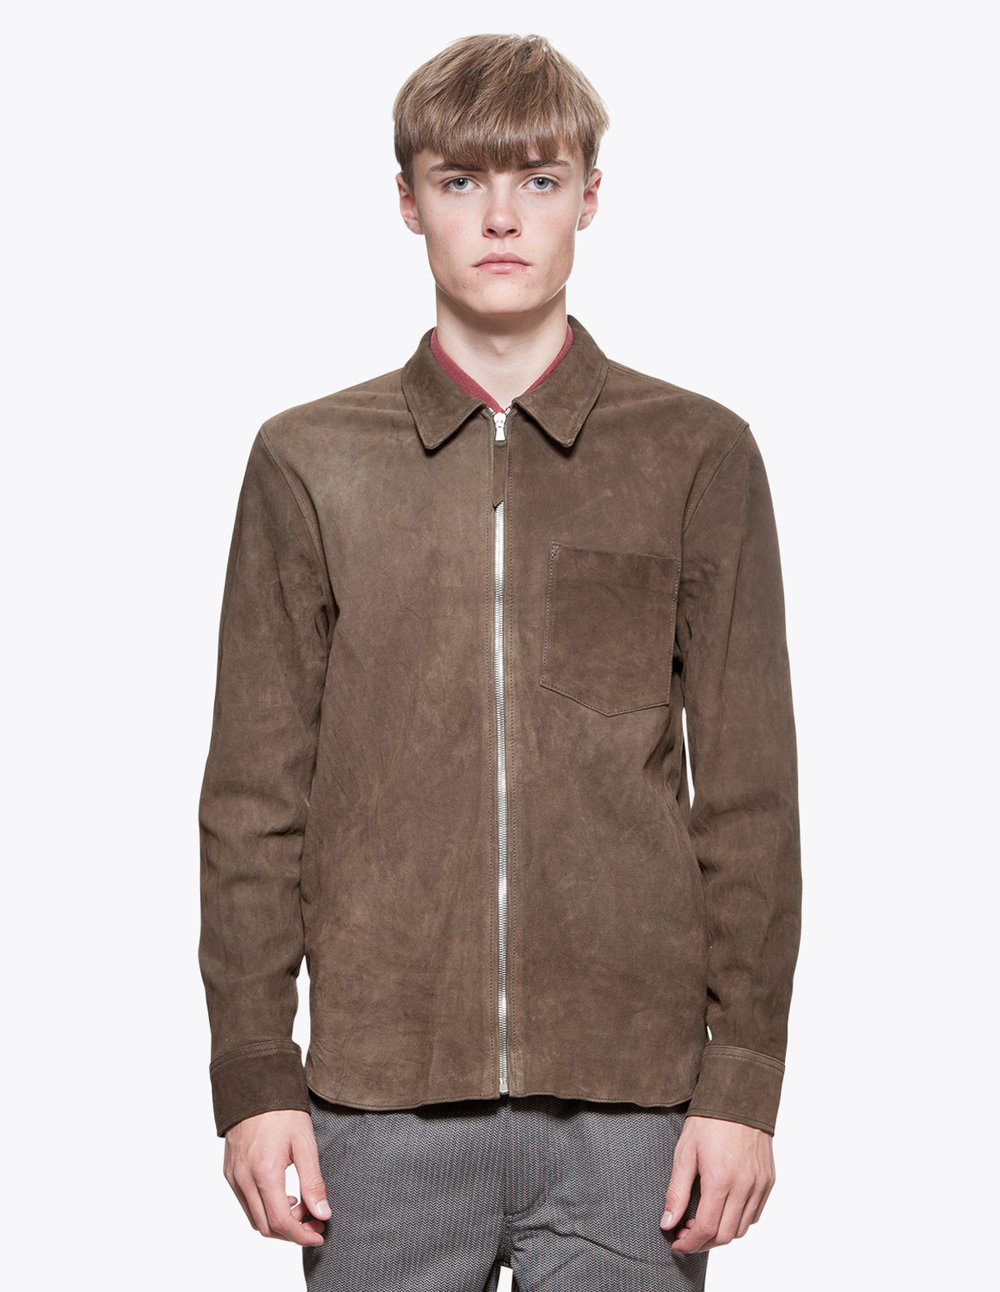 ol-shirt-suade-brown002.jpg